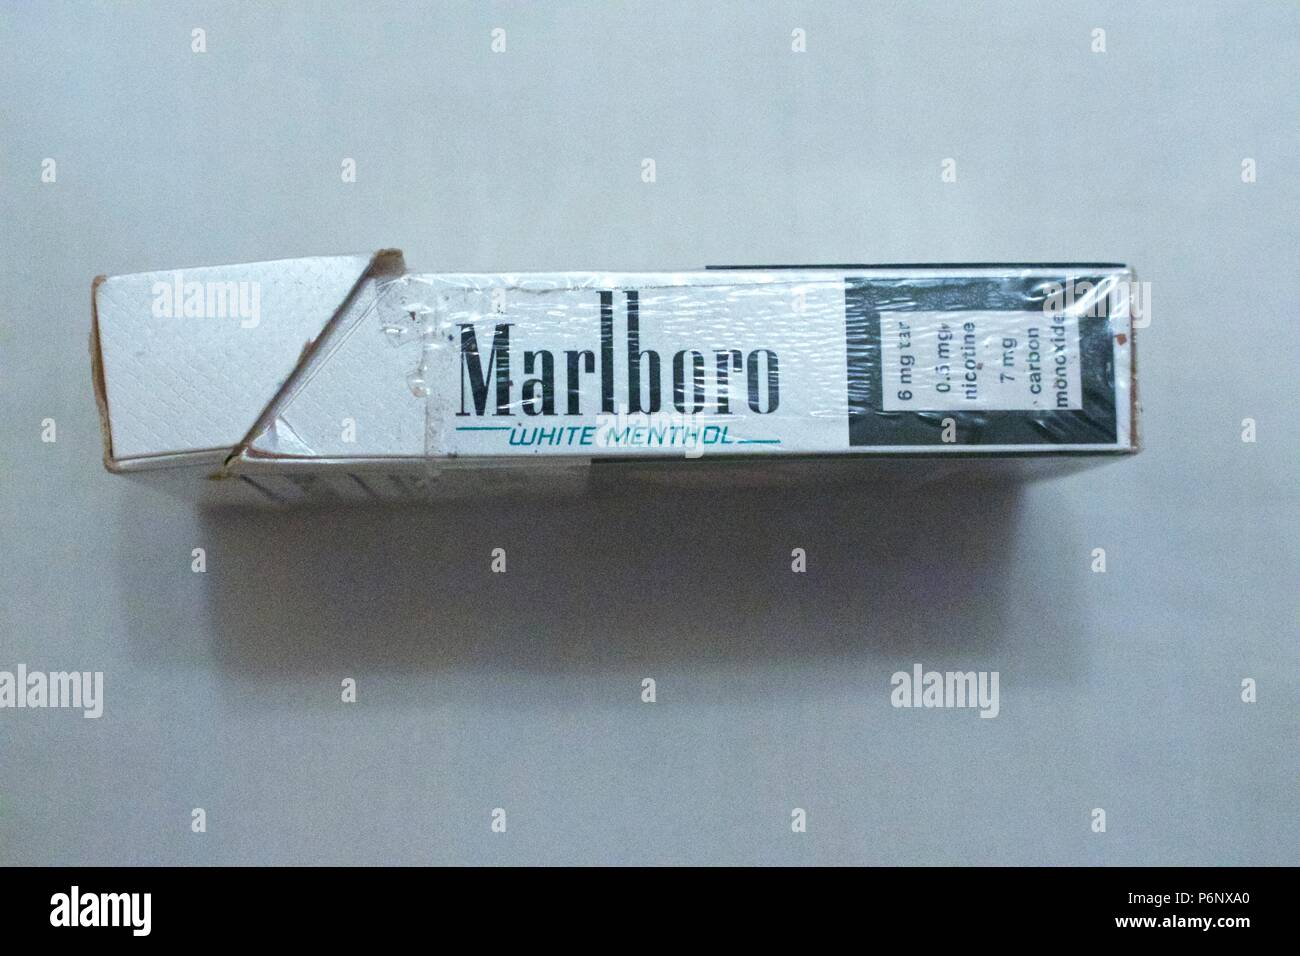 Can i buy cigarettes Dunhill online